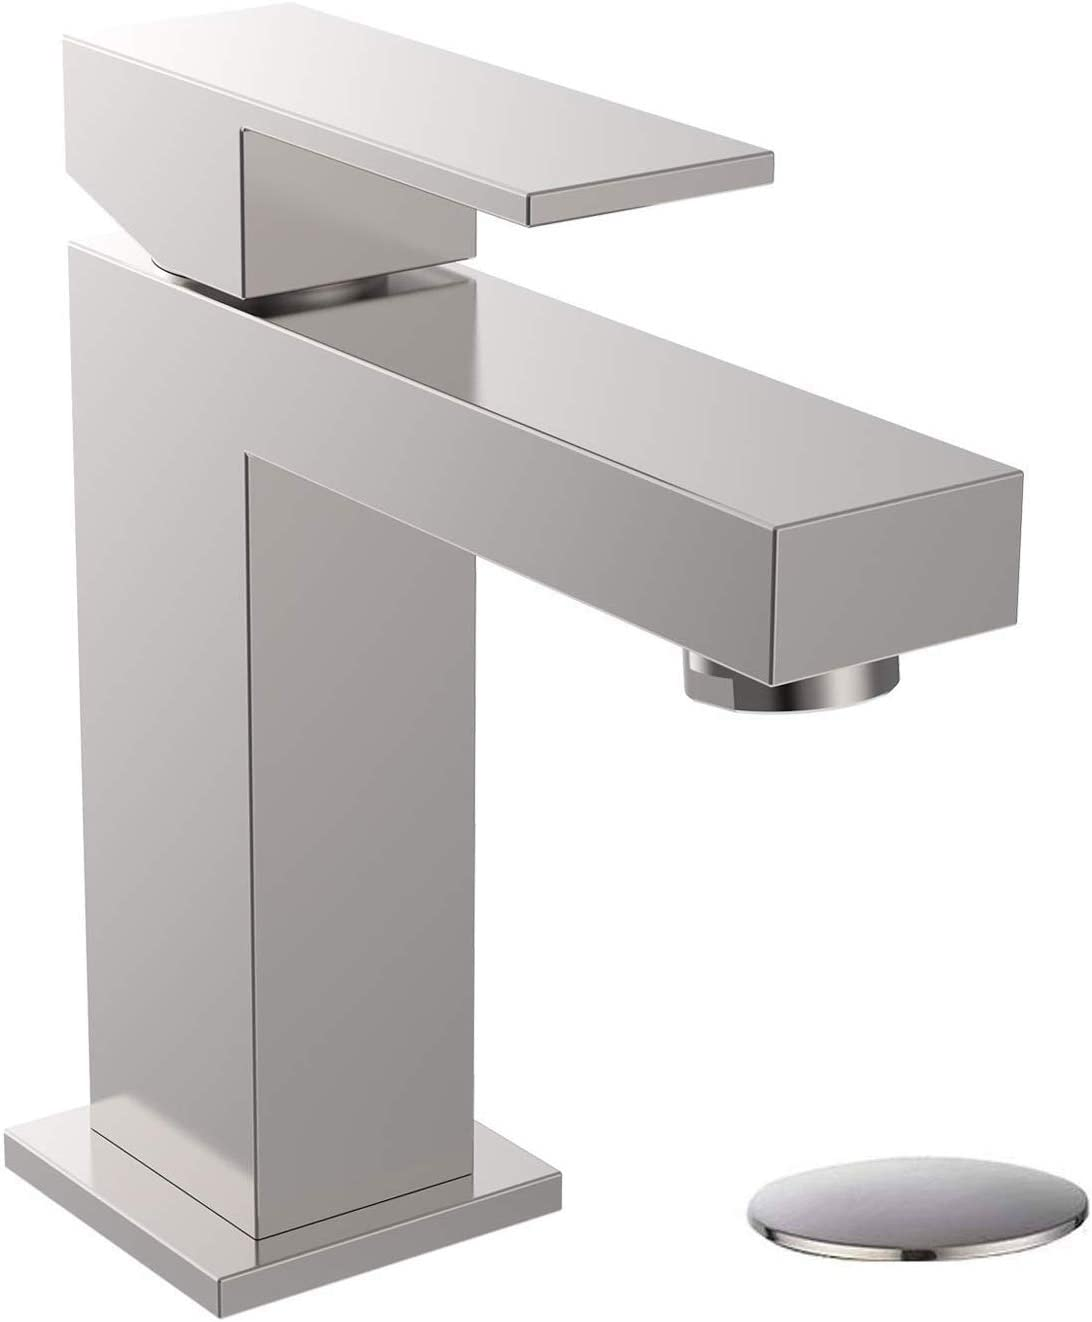 Alwen Bathroom Faucet Brushed Nickel Bathroom Faucets For Sink 1 Hole Single Faucet With Pop Up Drain Leadfree Touch On Bathroom Sink Faucet